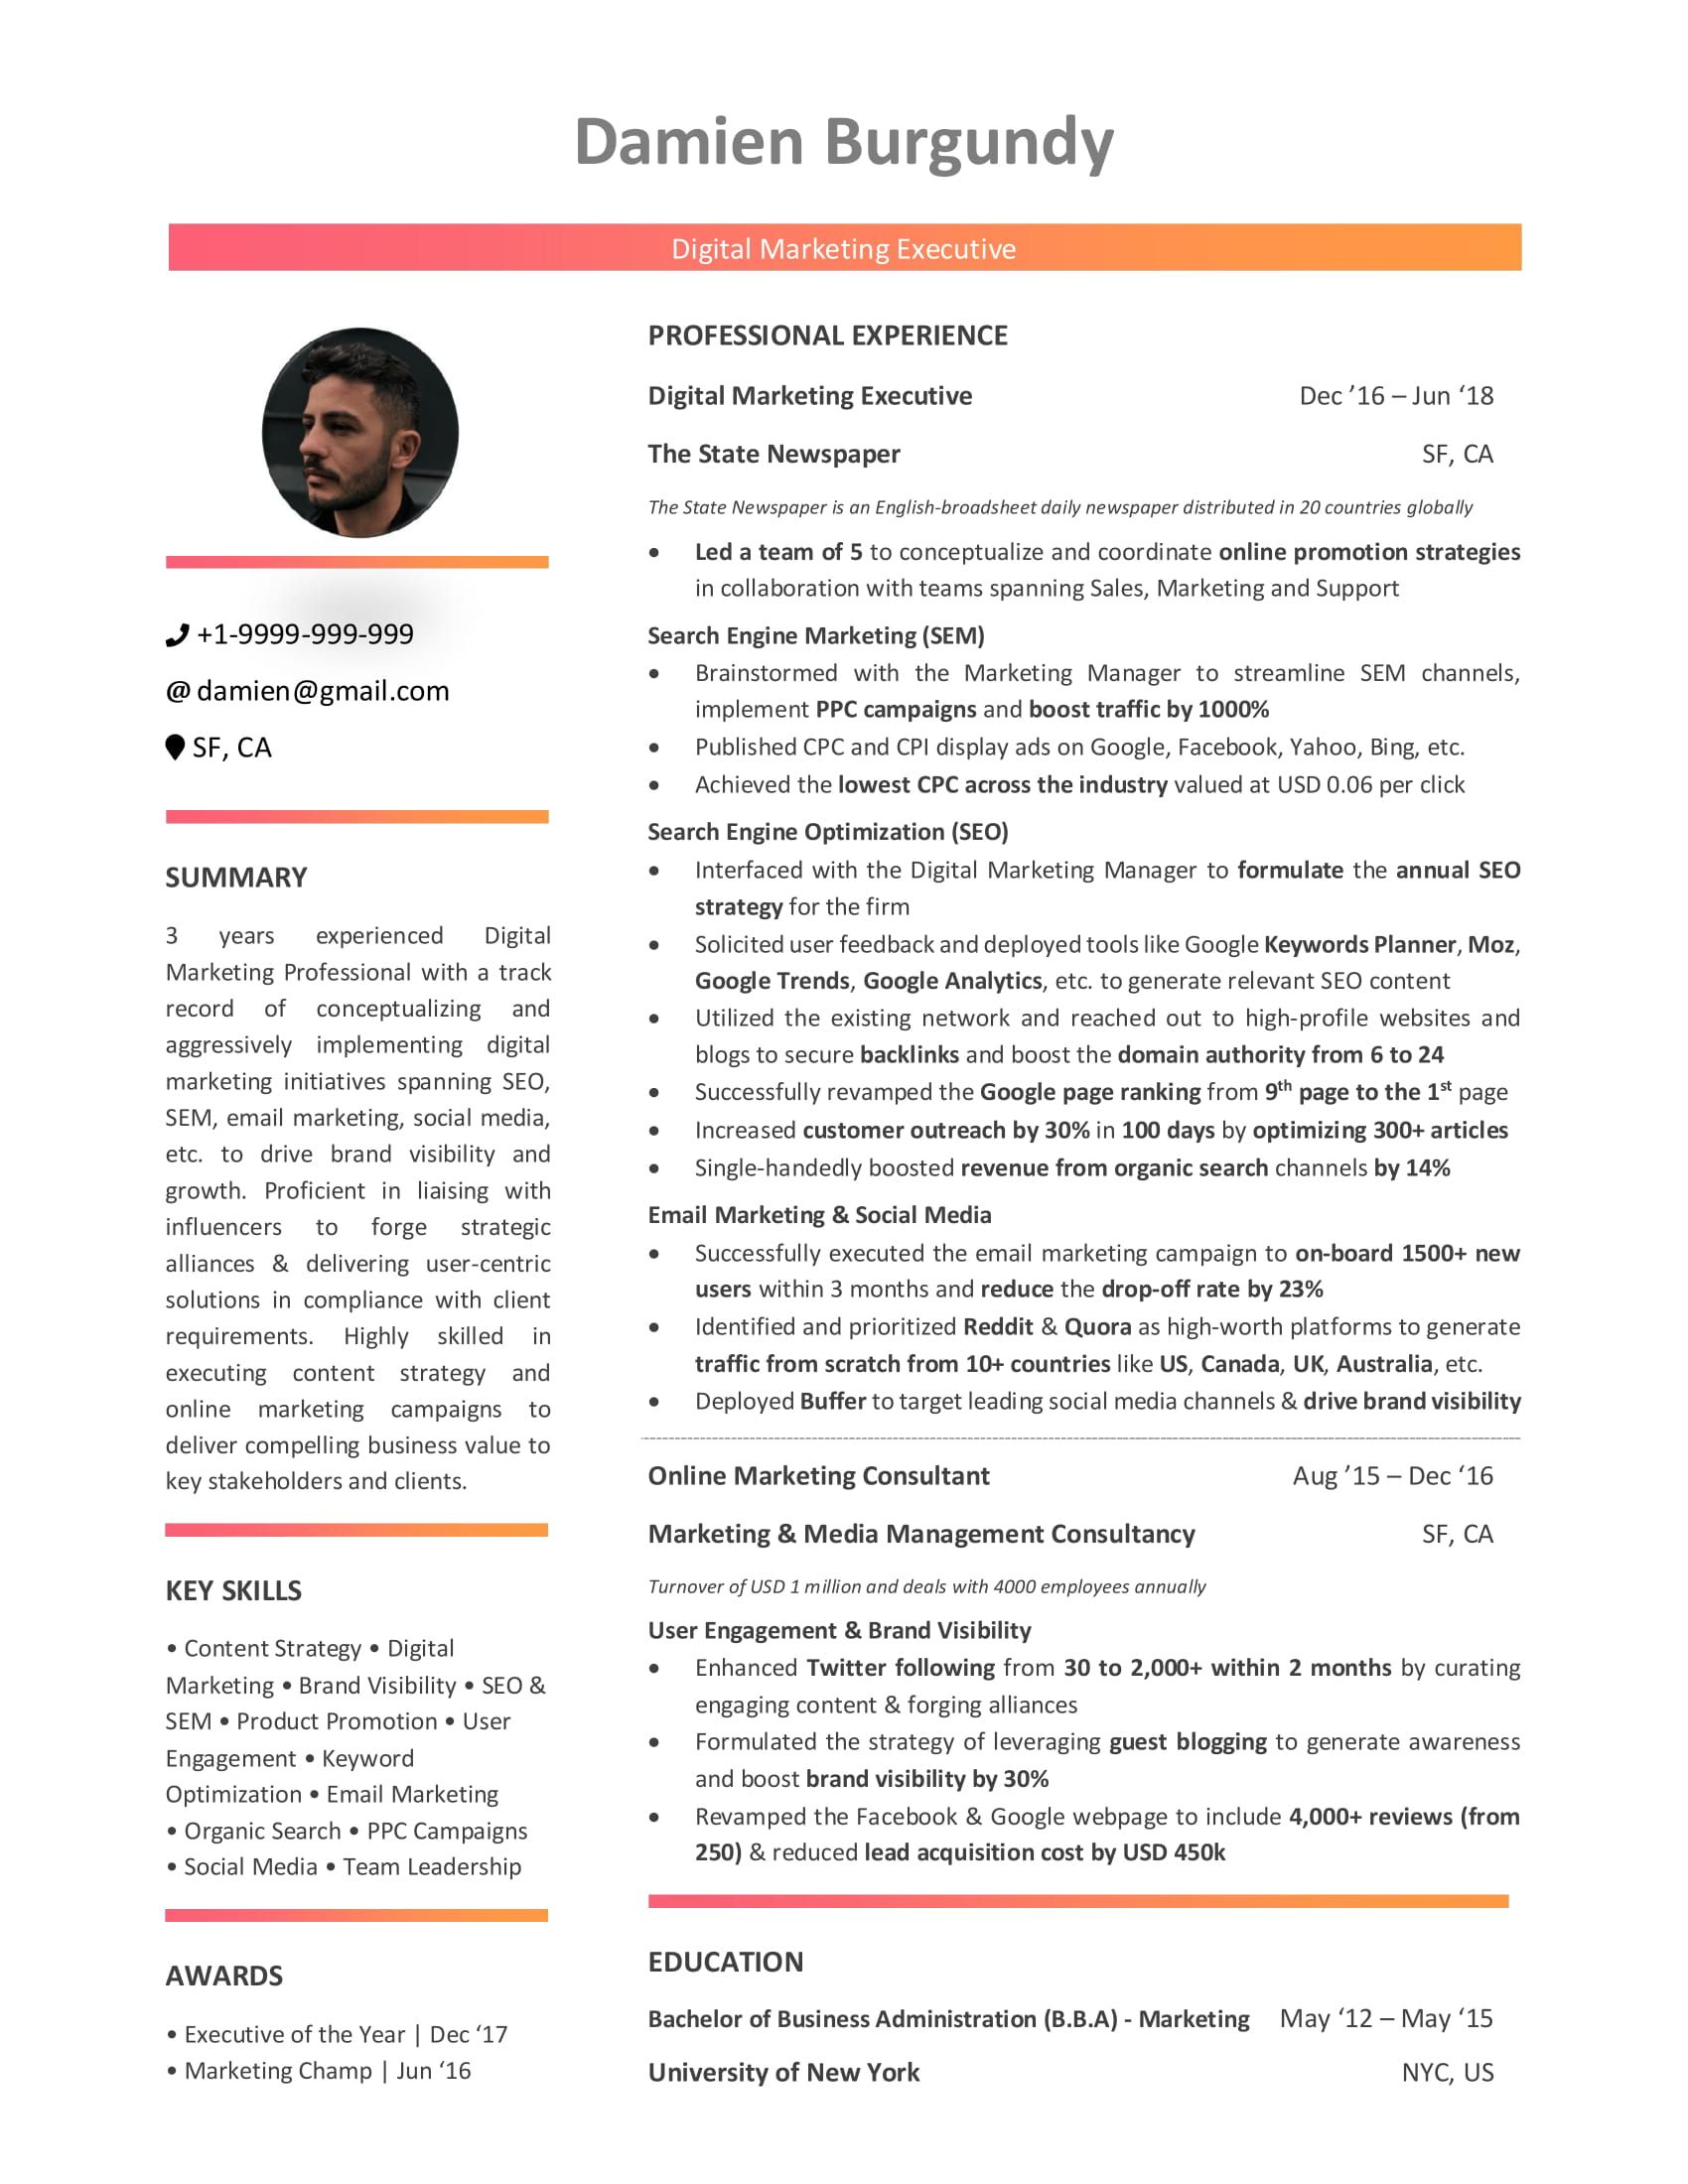 digital marketing resume guide with samples and examples summary graduate student Resume Digital Marketing Resume Summary